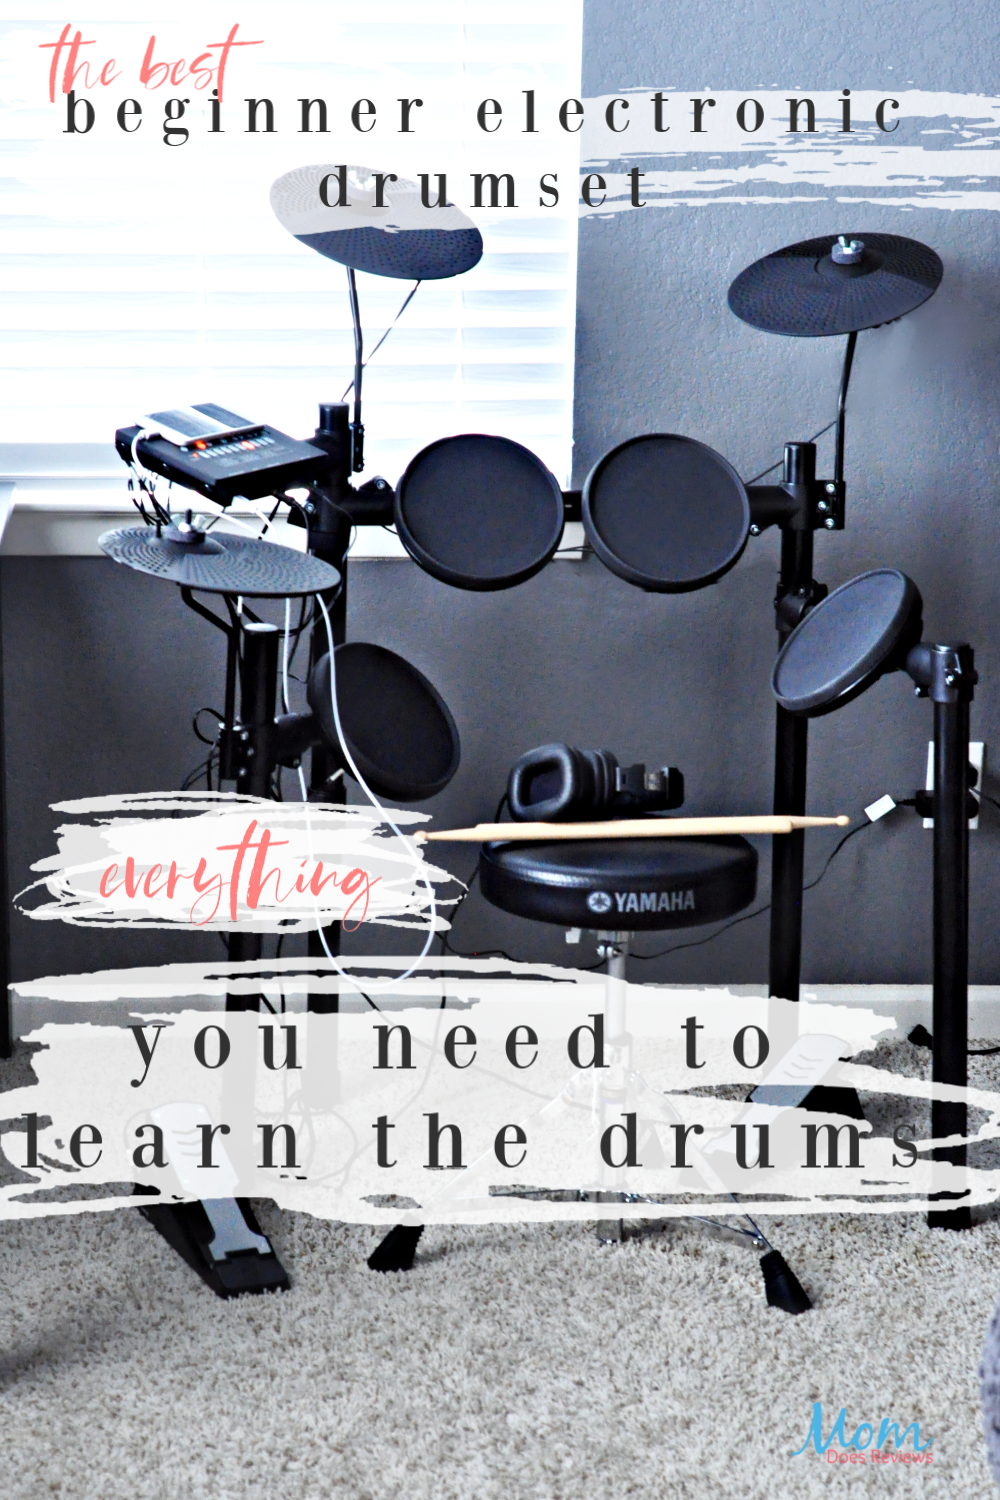 The Best Beginner Electronic Drum Kit for just about anyone